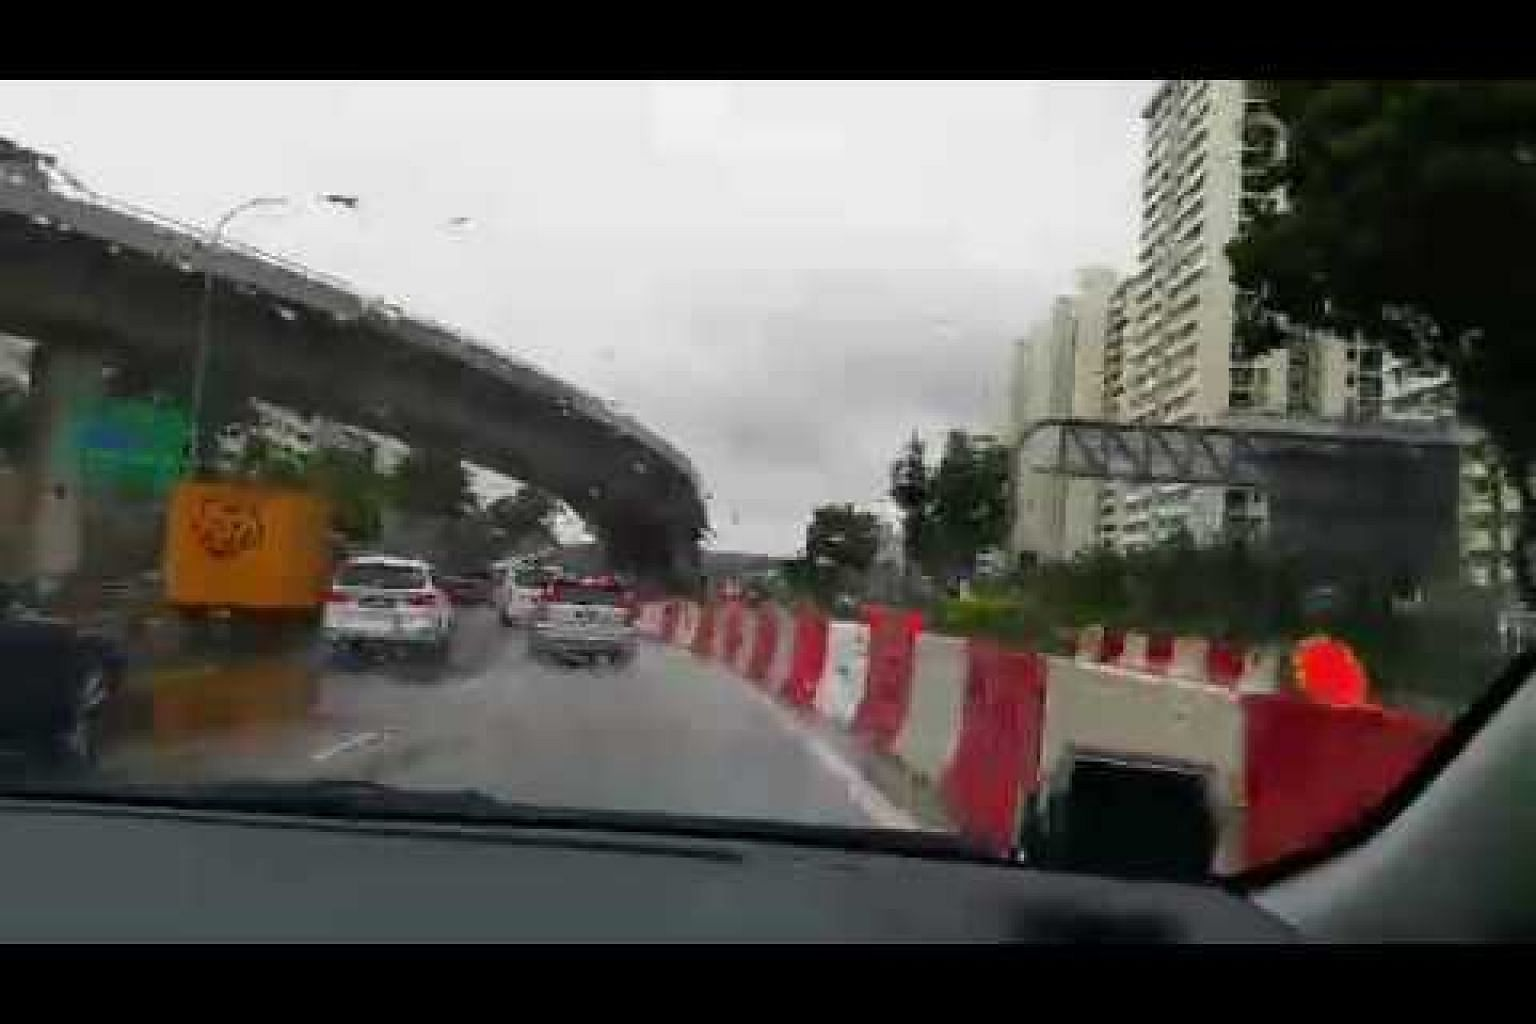 The sharp curvatures on Braddell Road